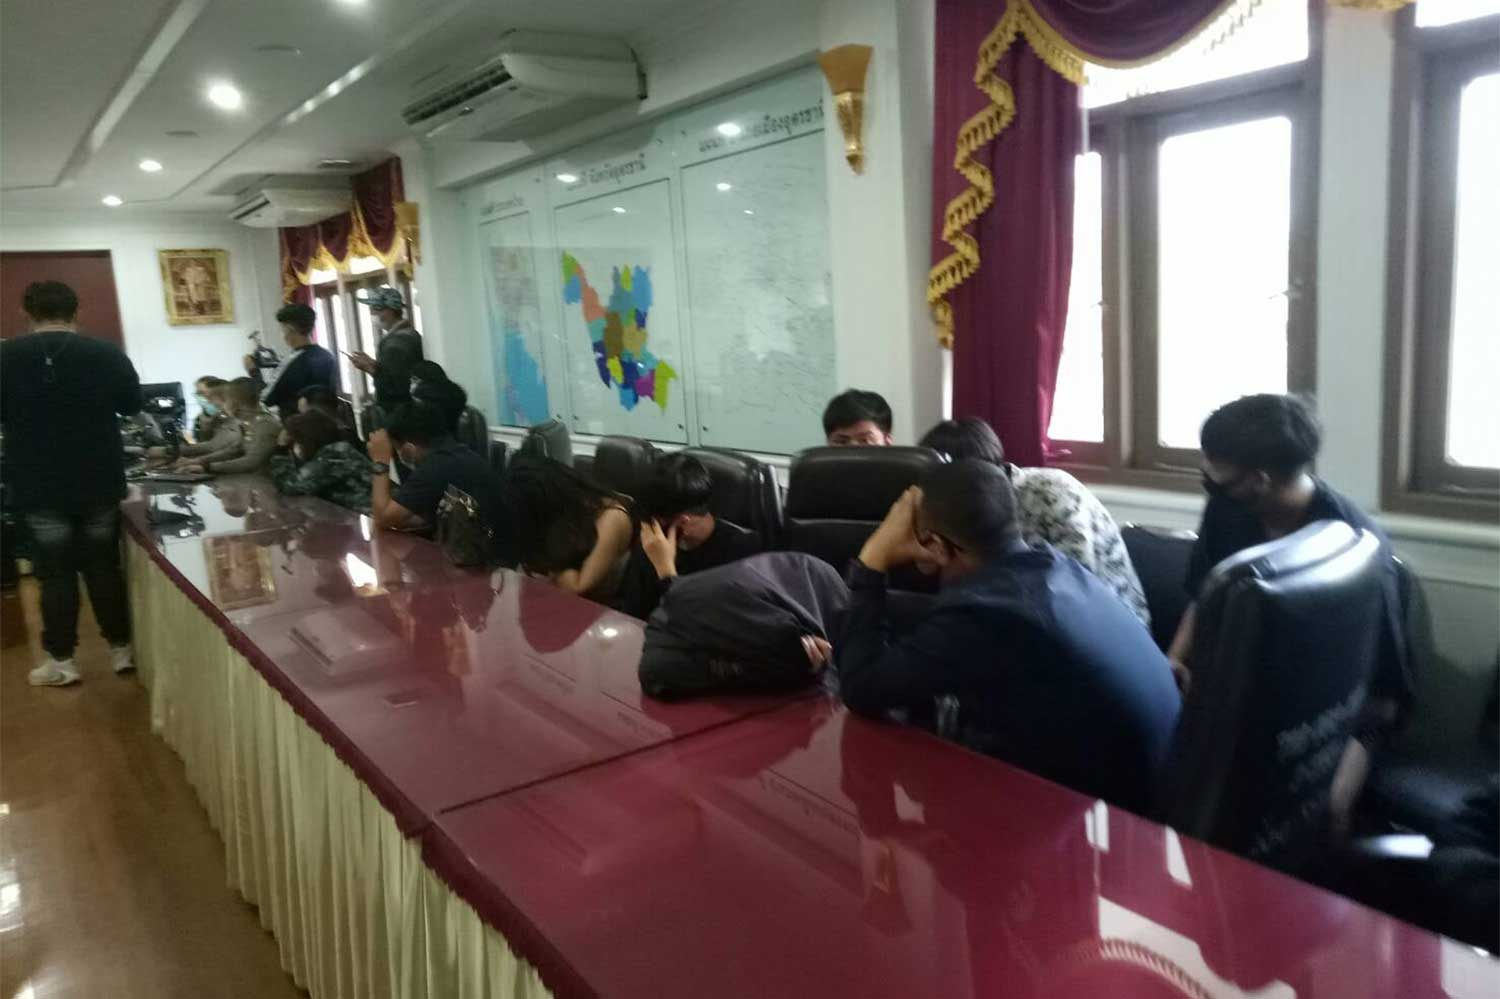 Twenty-two people are arrested during a pre-dawn raid on a hotel room in Udon Thani province with some illicit drugs seized. (Photo taken from Muang Udon Thani police Facebook page)